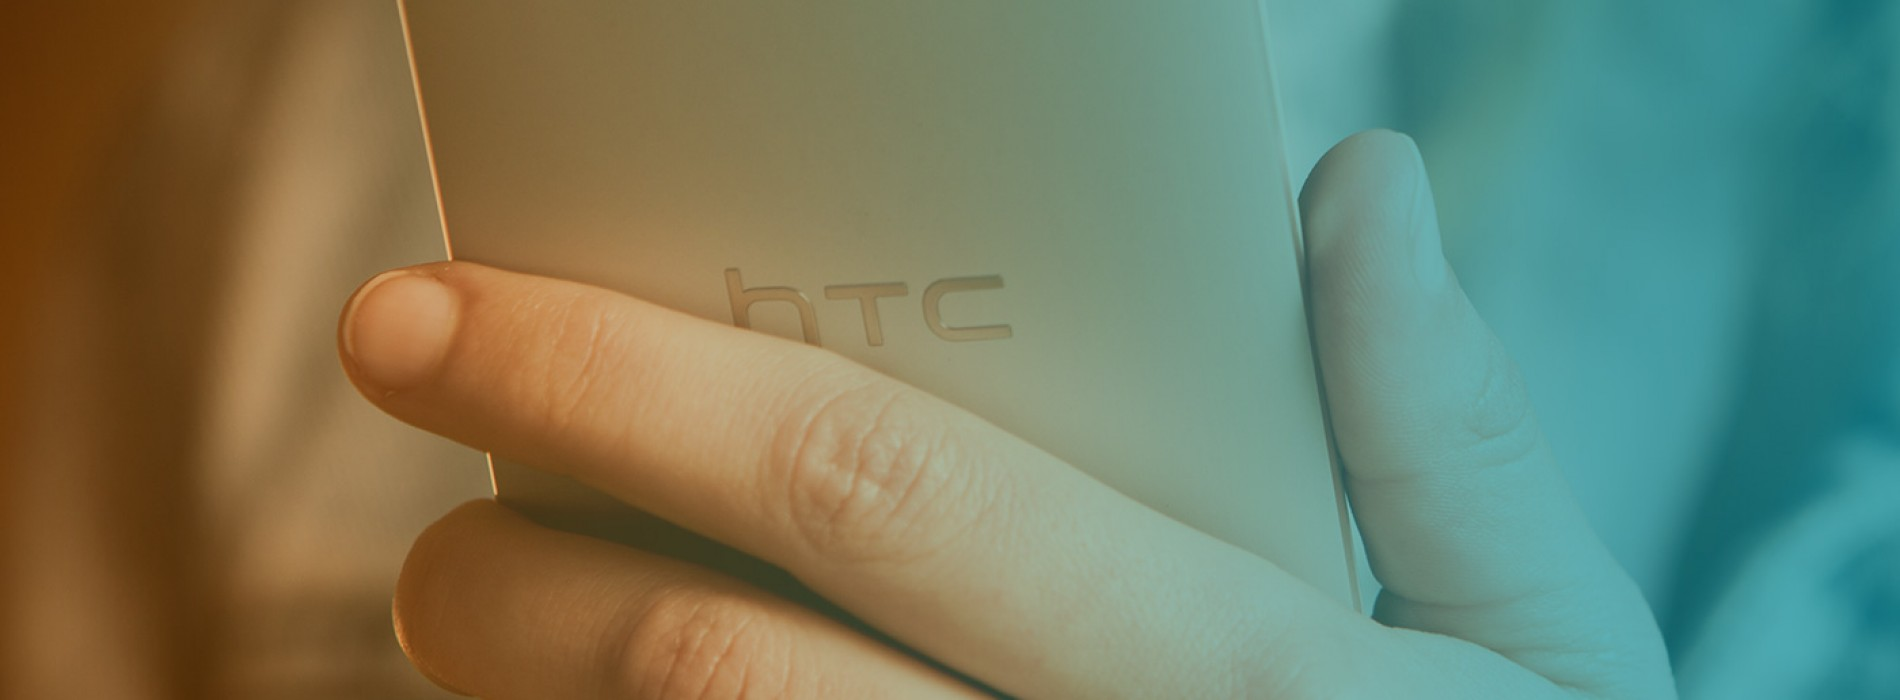 "HTC: ""We'll miss our self-imposed Android 4.4 target"""